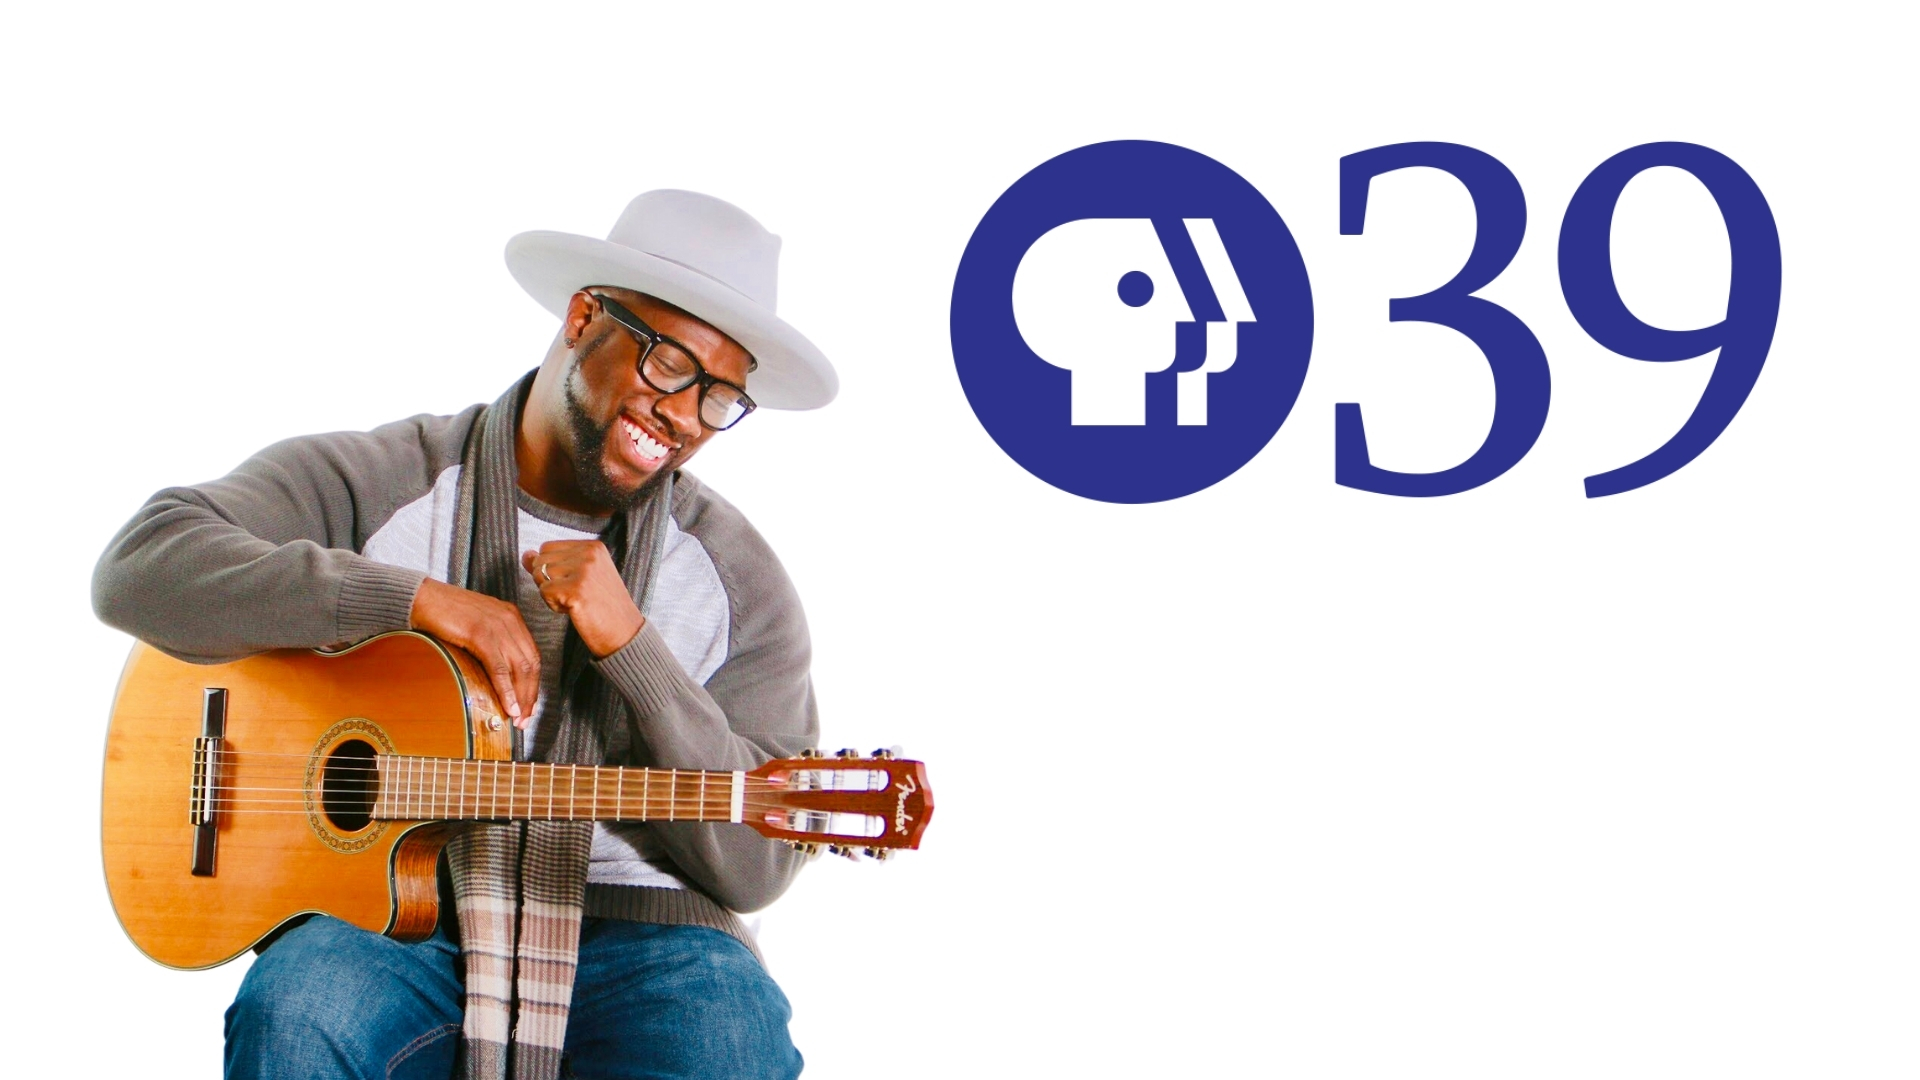 PBS39 Welcomes SaulPaul to their televised Summer Jam Concert Series